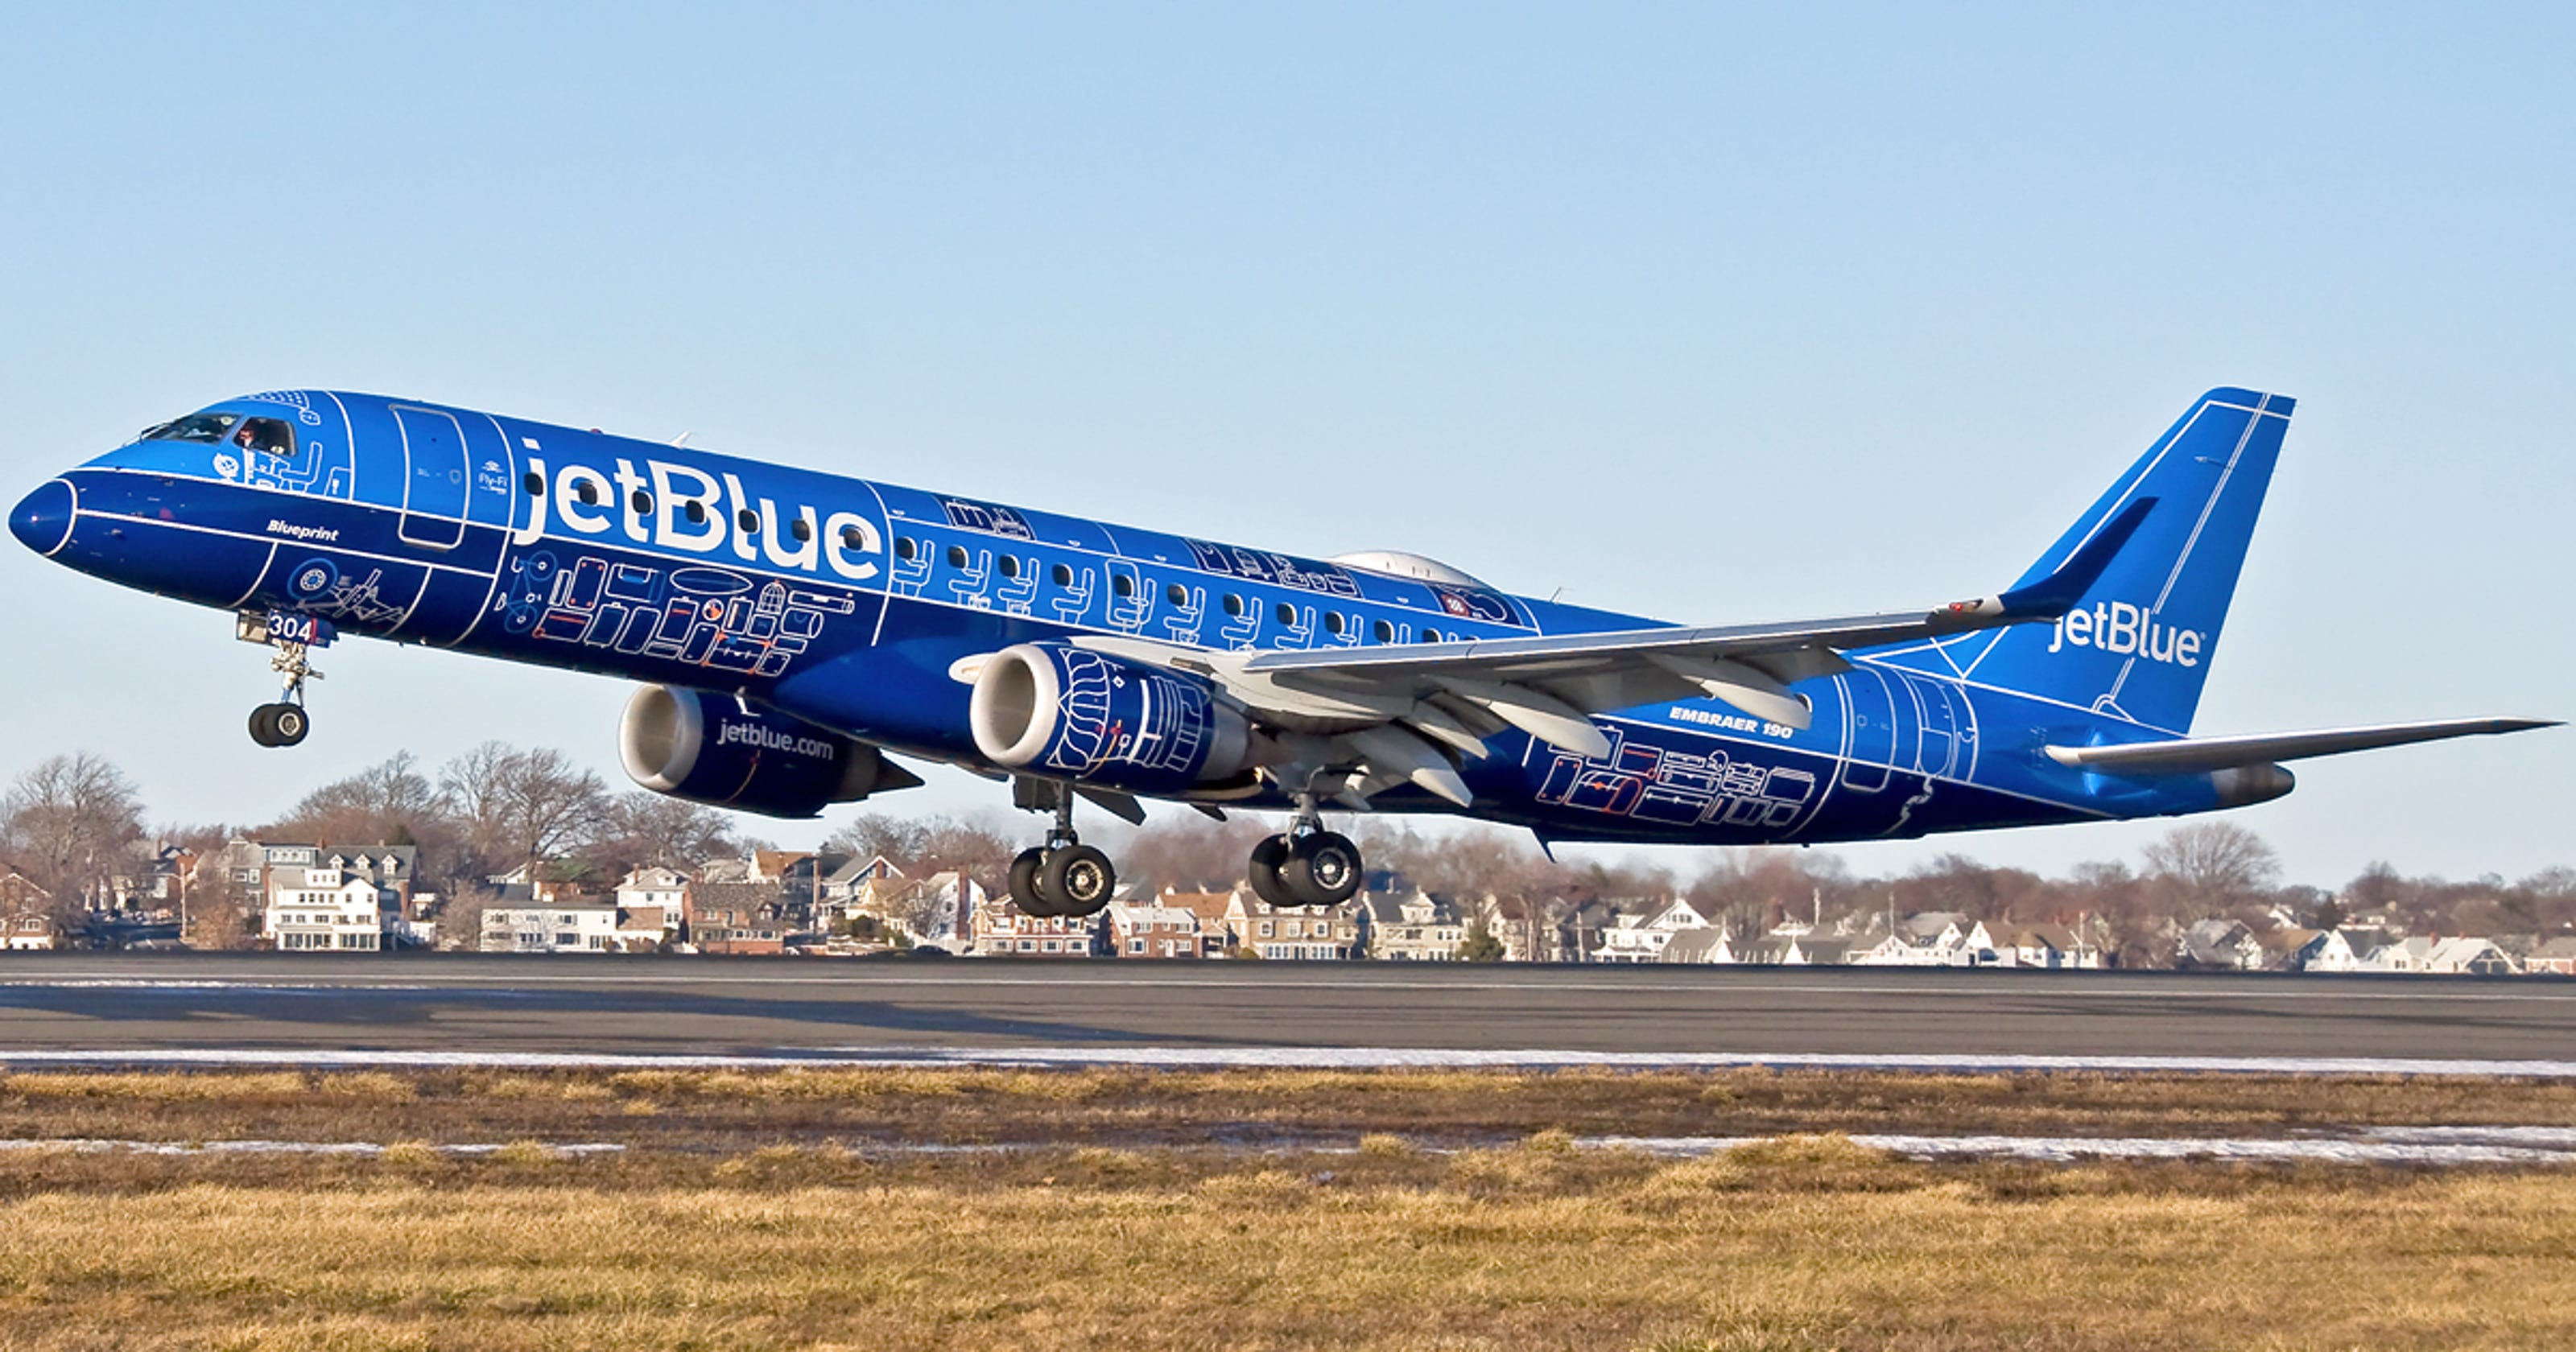 Jetblue rolls out special blueprint livery on embraer e190 malvernweather